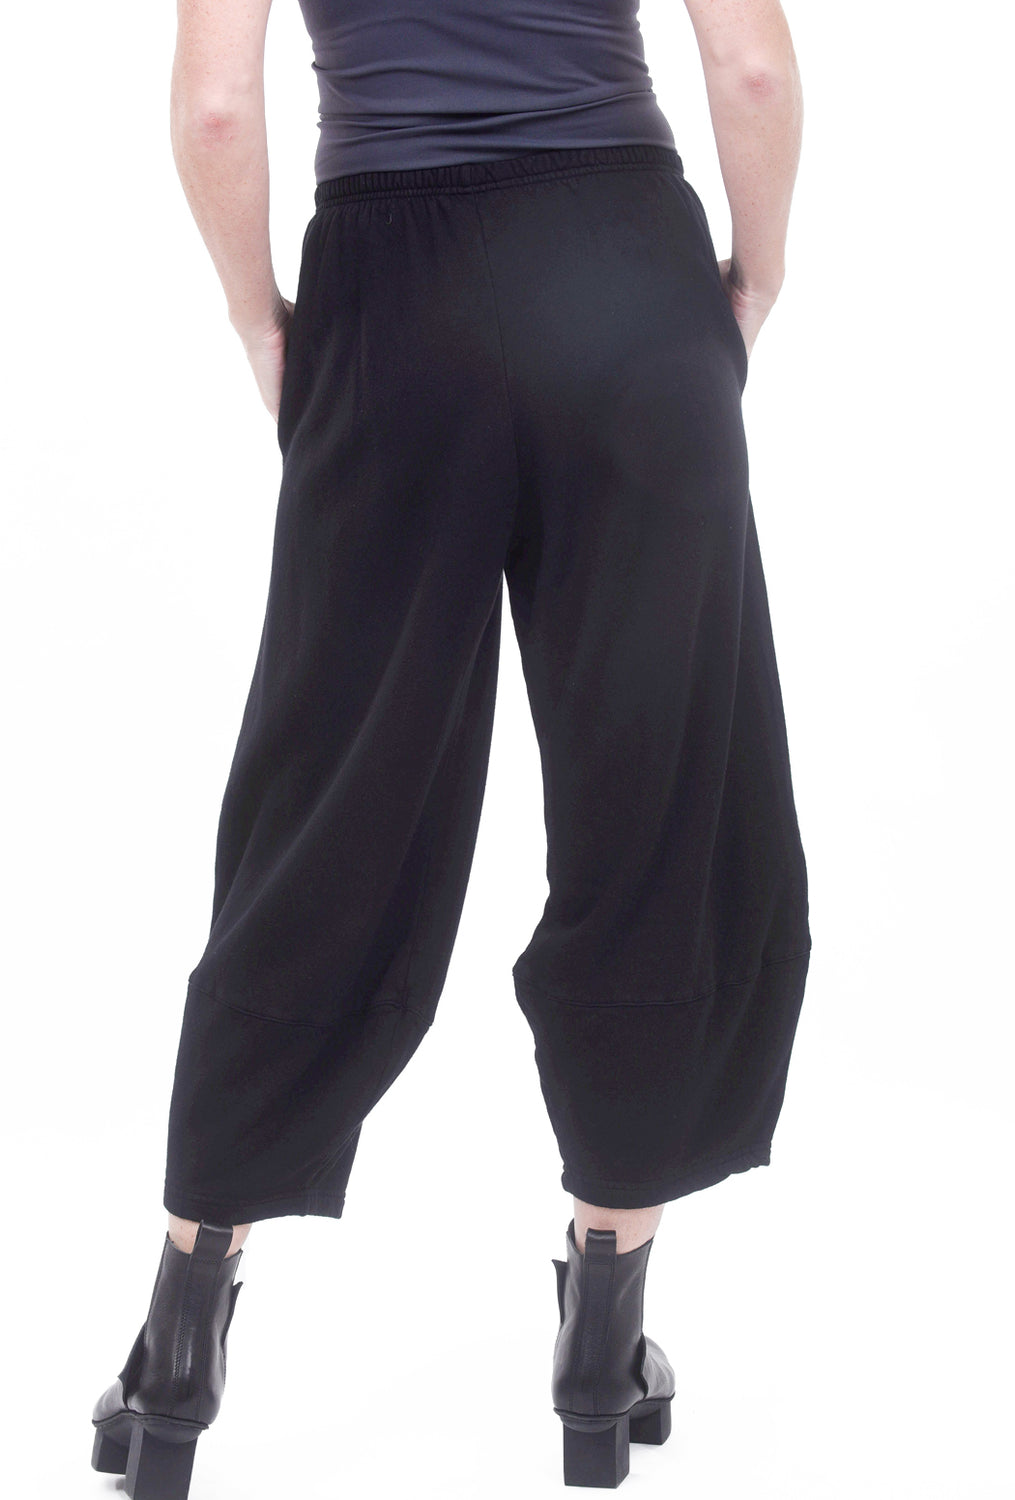 Bryn Walker Oliver Pants, Black